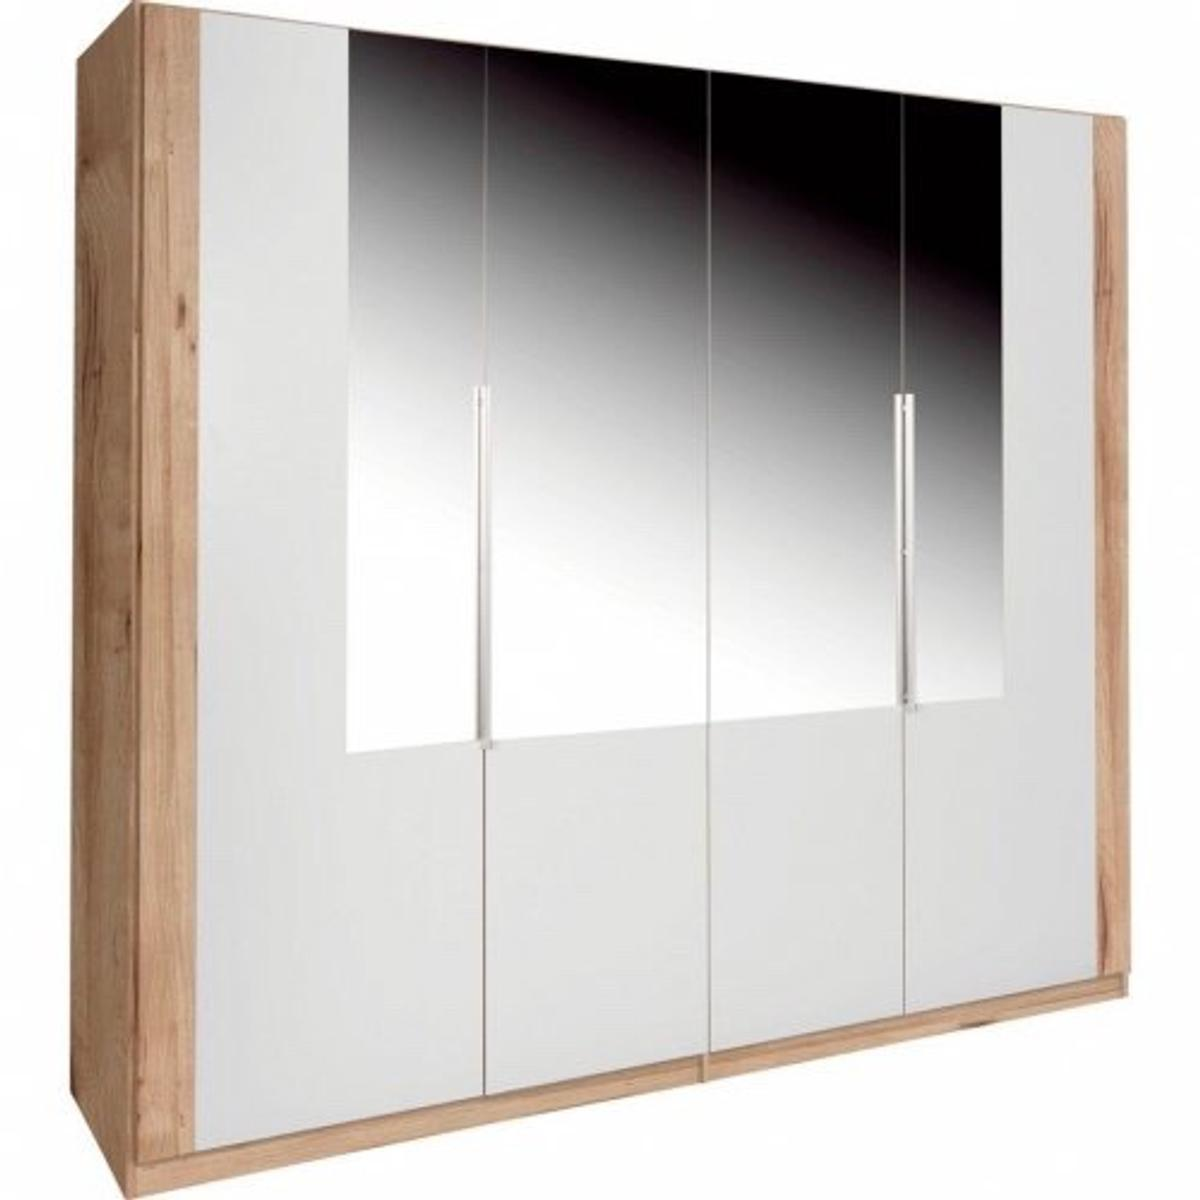 Momax Schrank Weiss In 4020 Linz For 100 00 For Sale Shpock